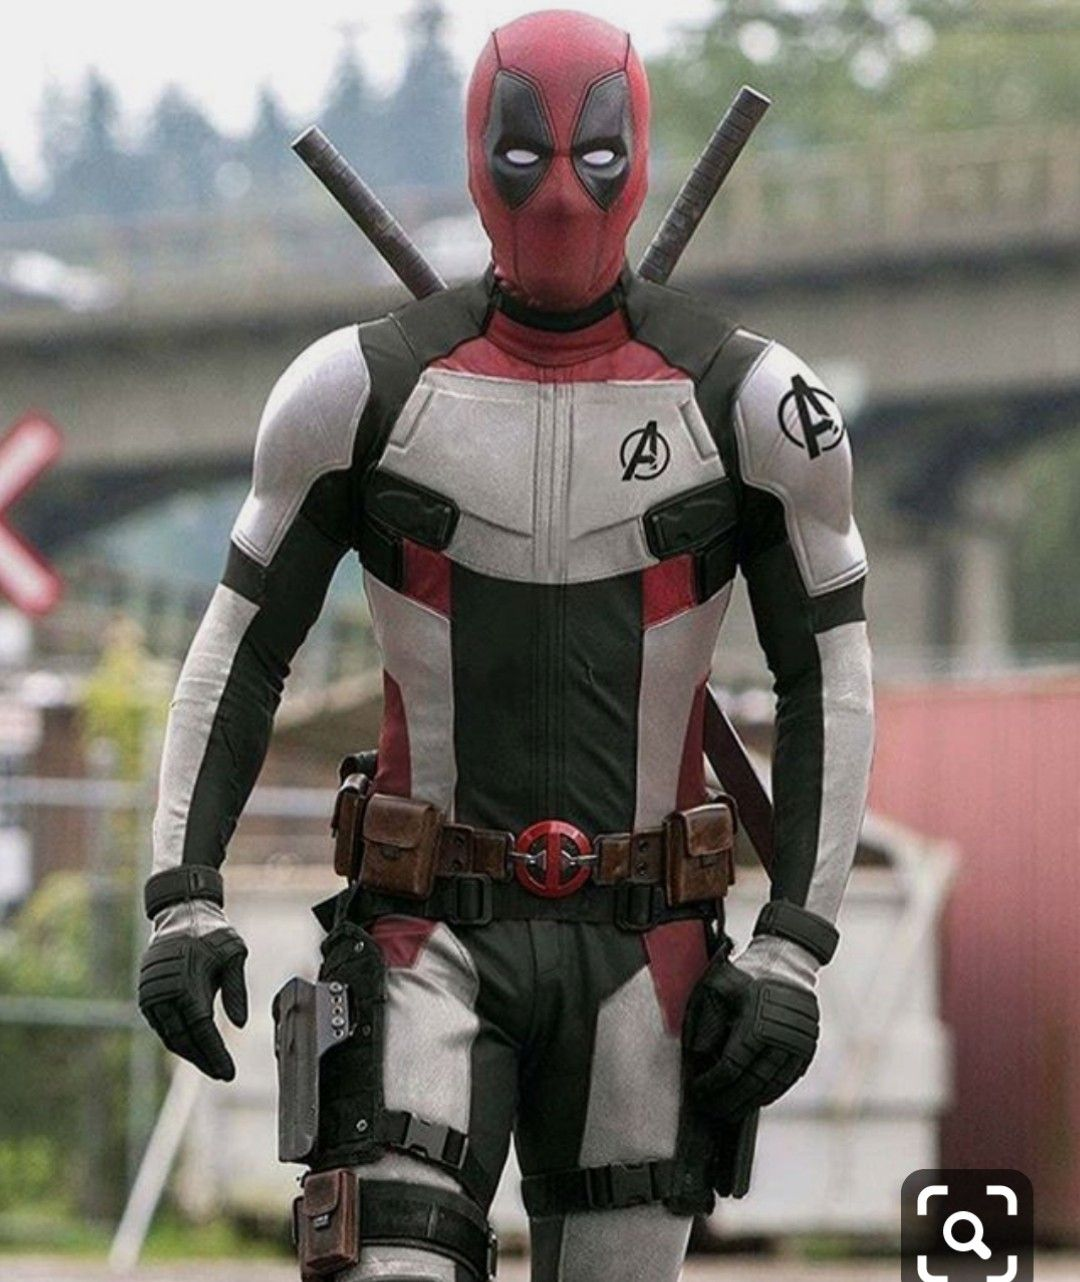 Image By Randy Schafer On DEADPOOL